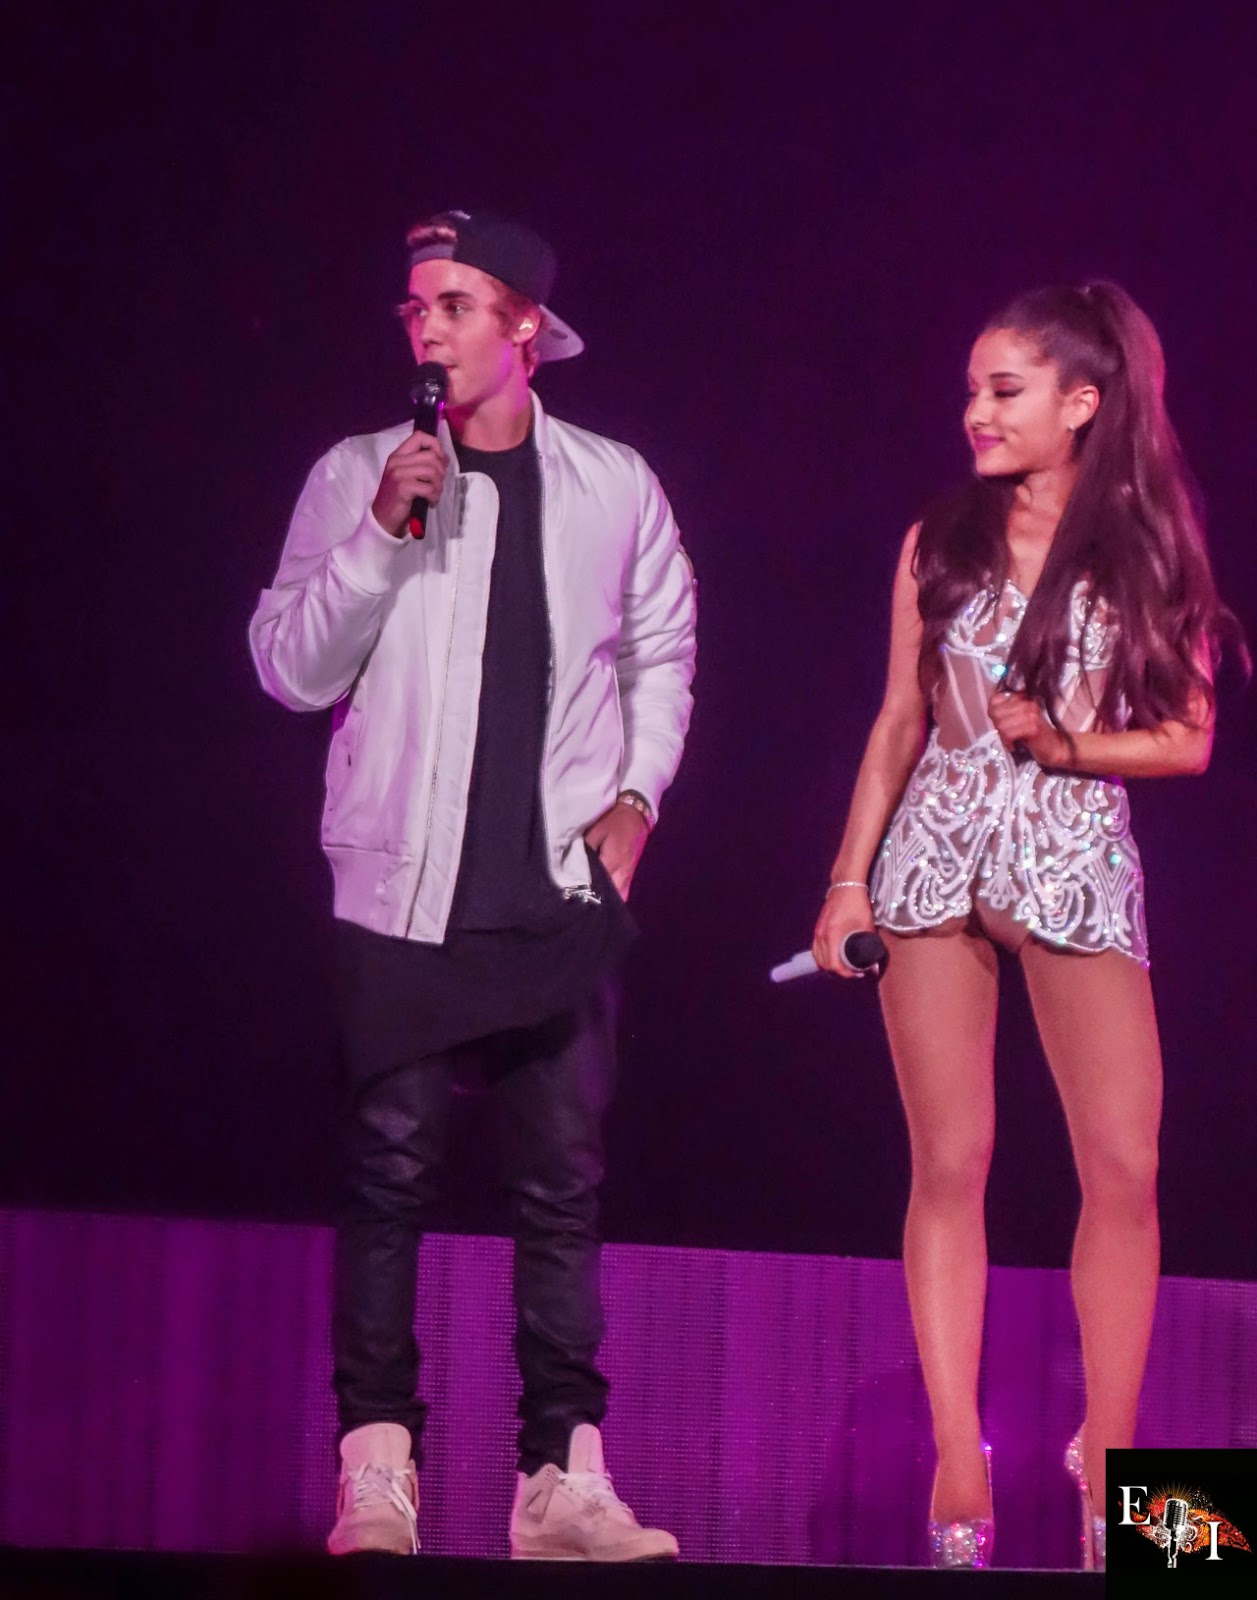 Ariana Grande – Performing with Justin Bieber in Miami